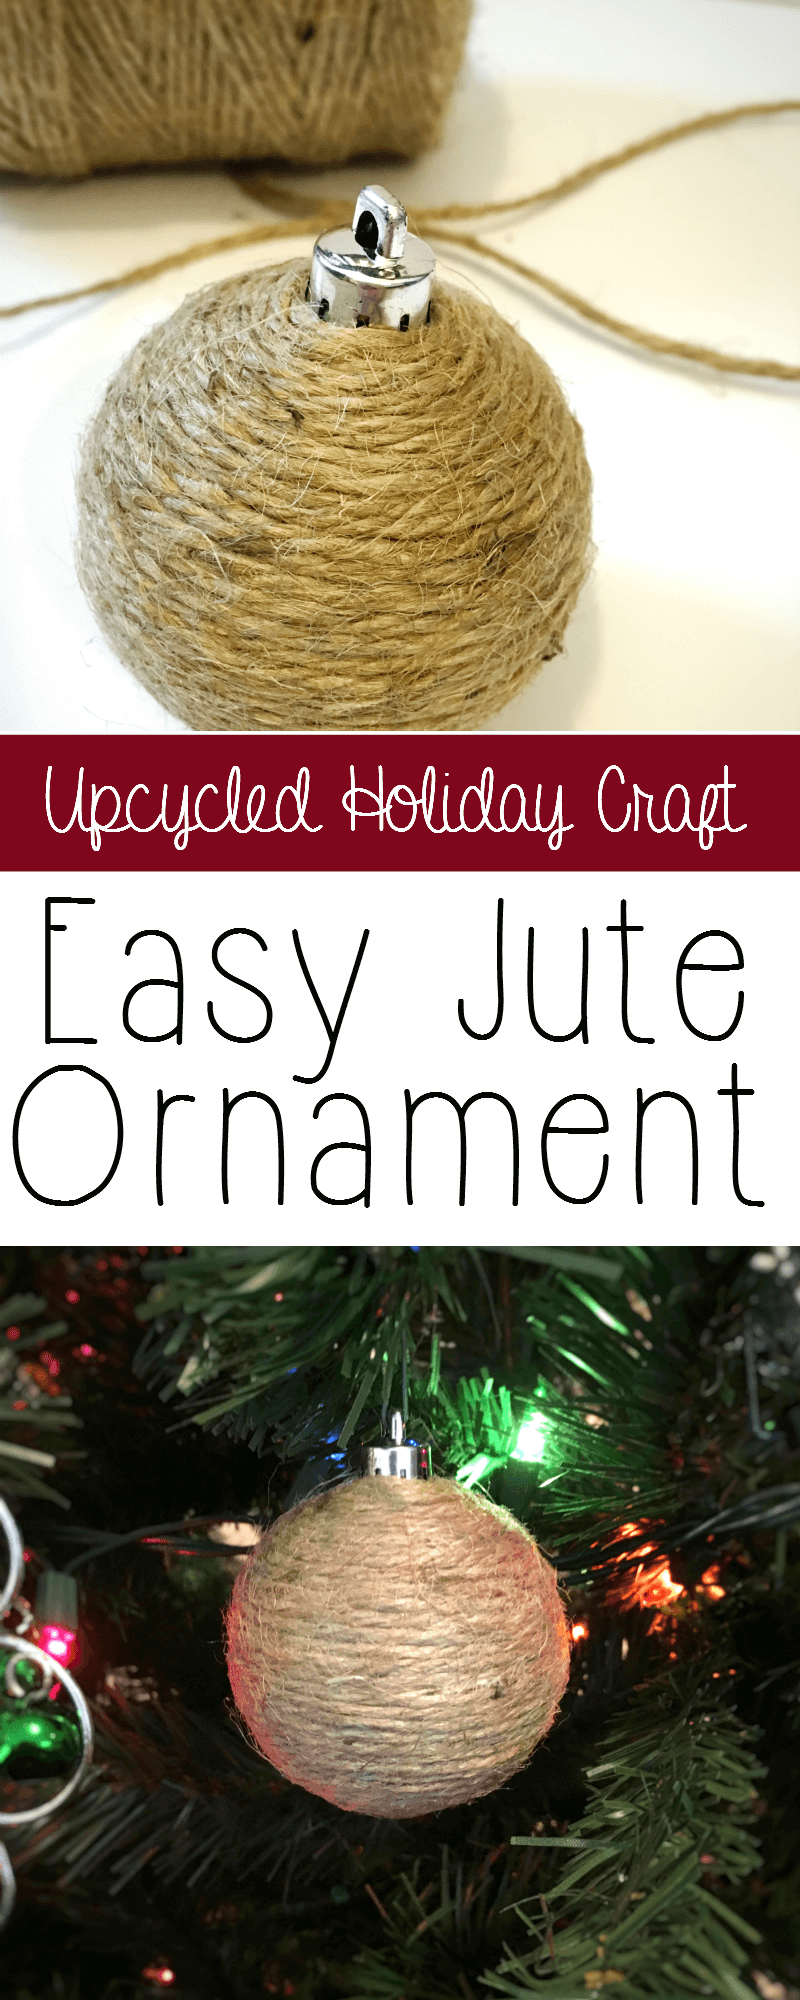 Upcycled Jute Ornaments Easy And Inexpensive Craft Christmas Diy Christmas Ornaments Holiday Crafts